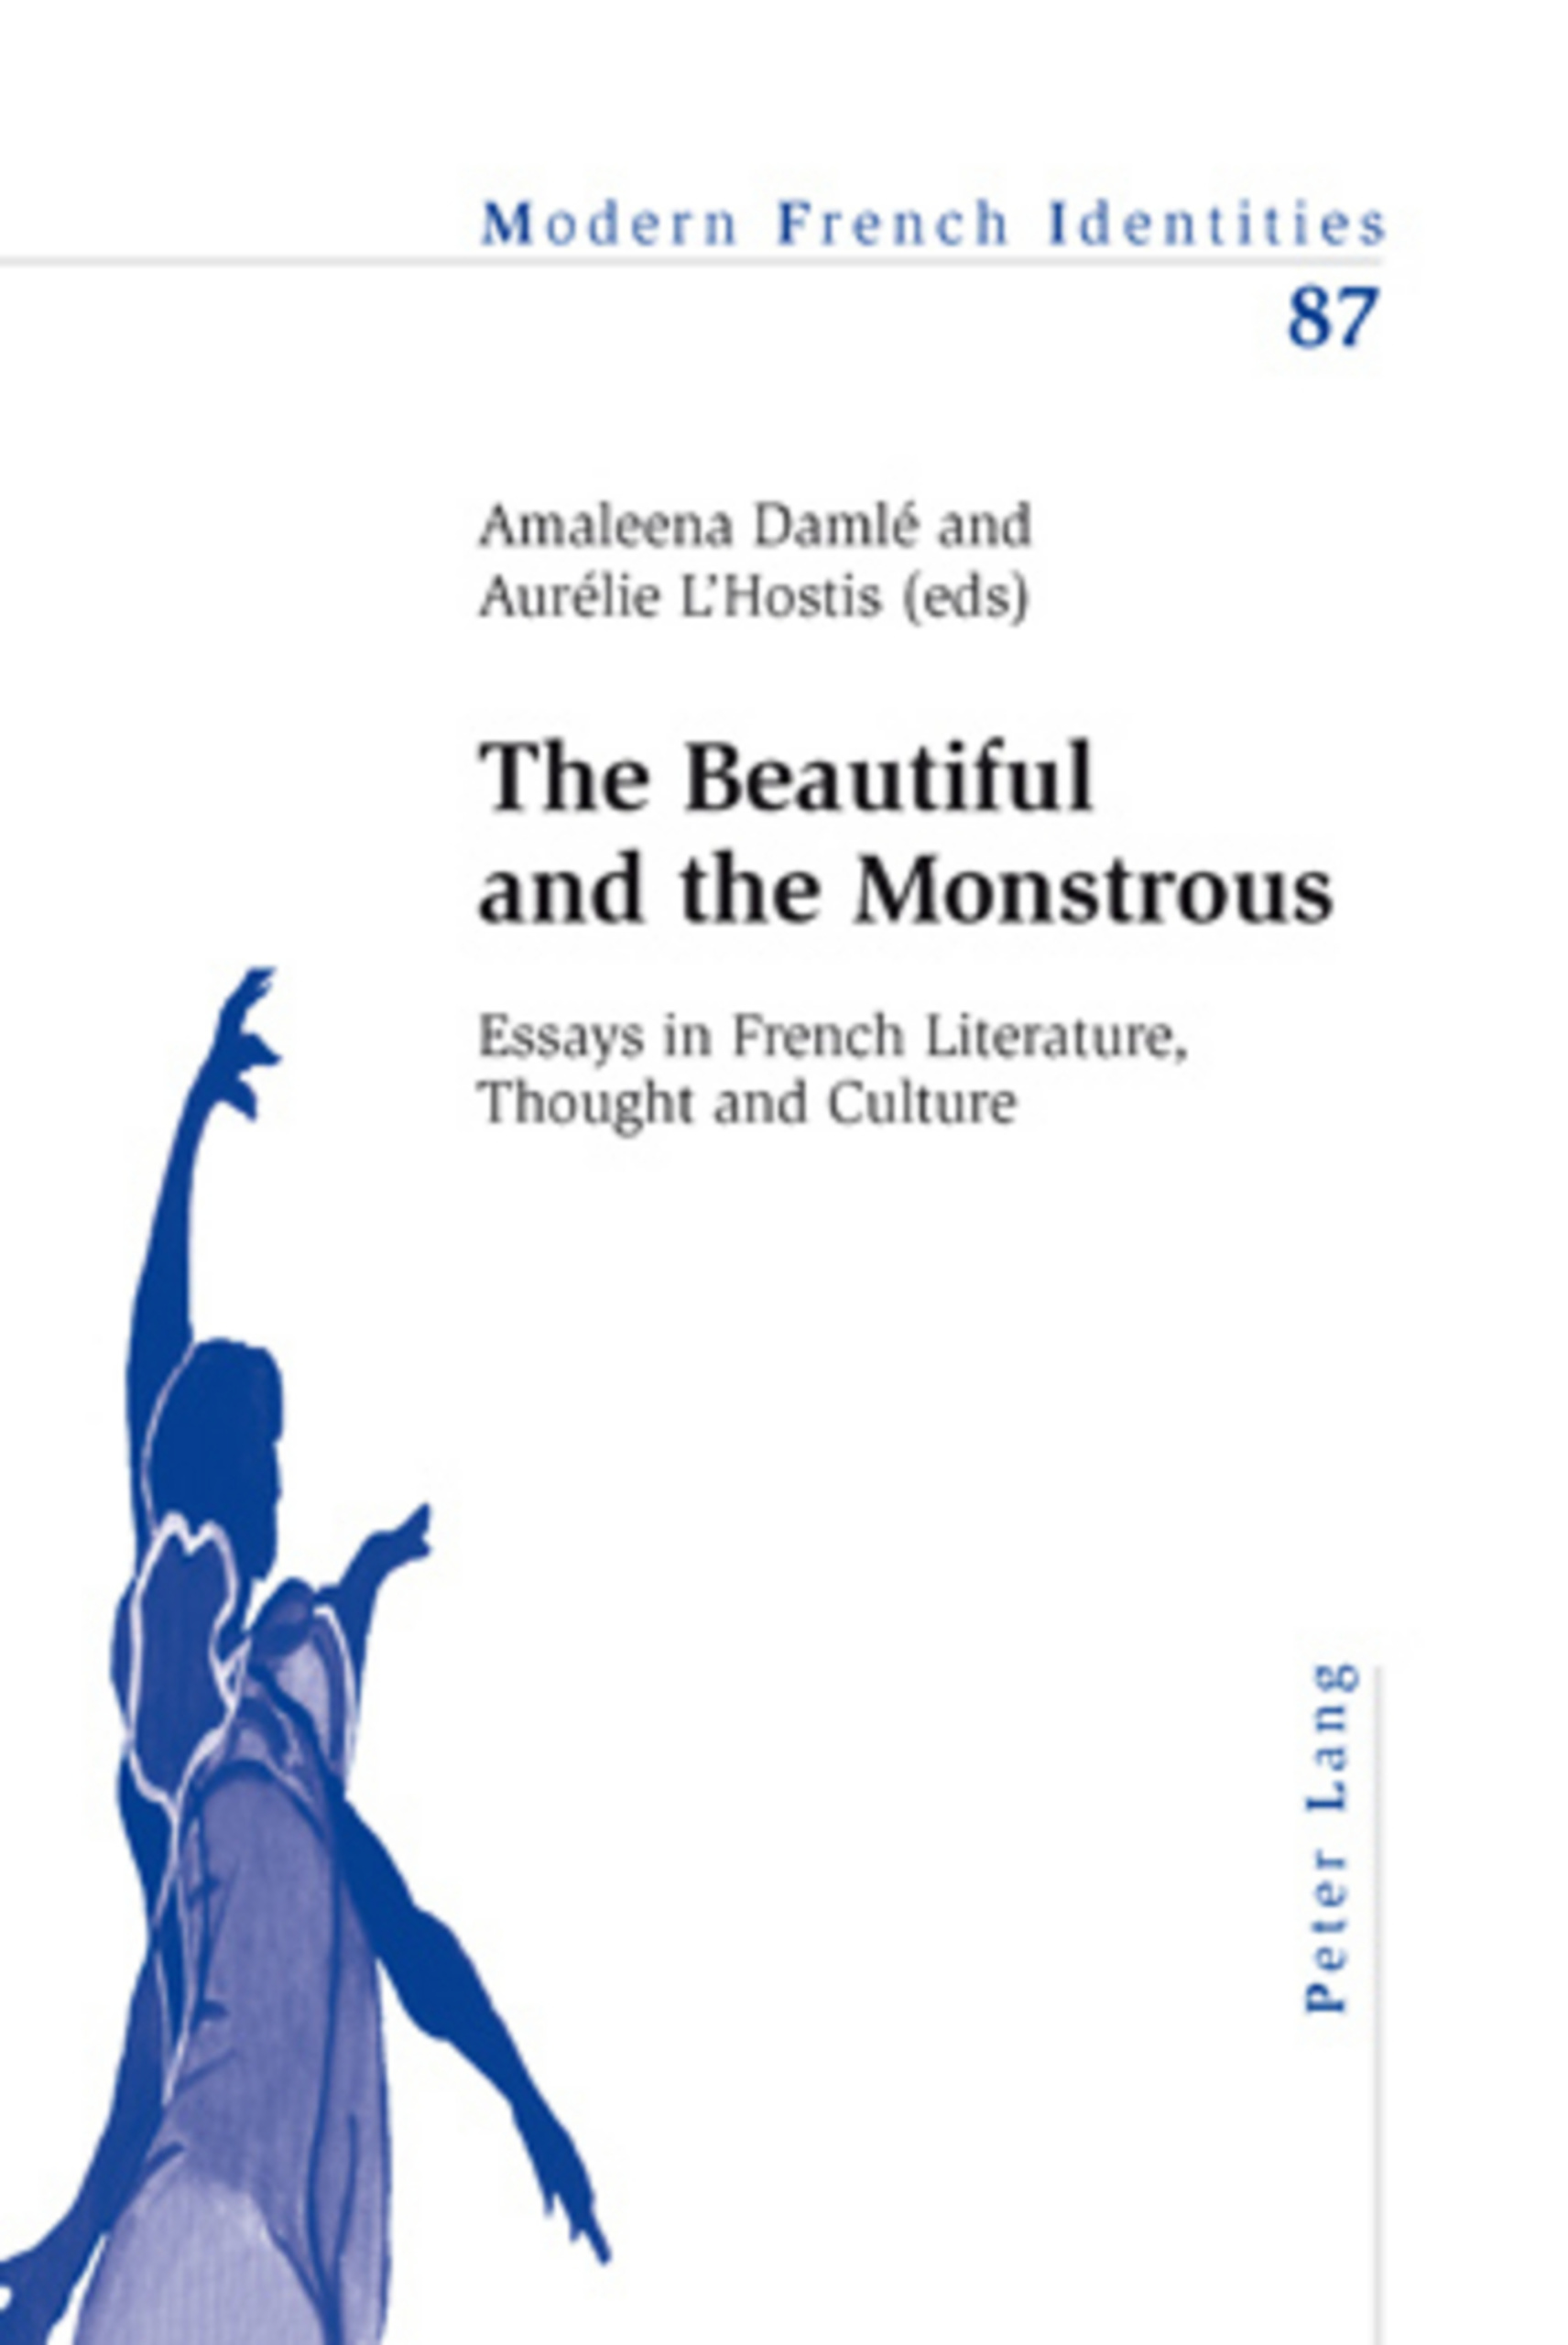 Title: The Beautiful and the Monstrous